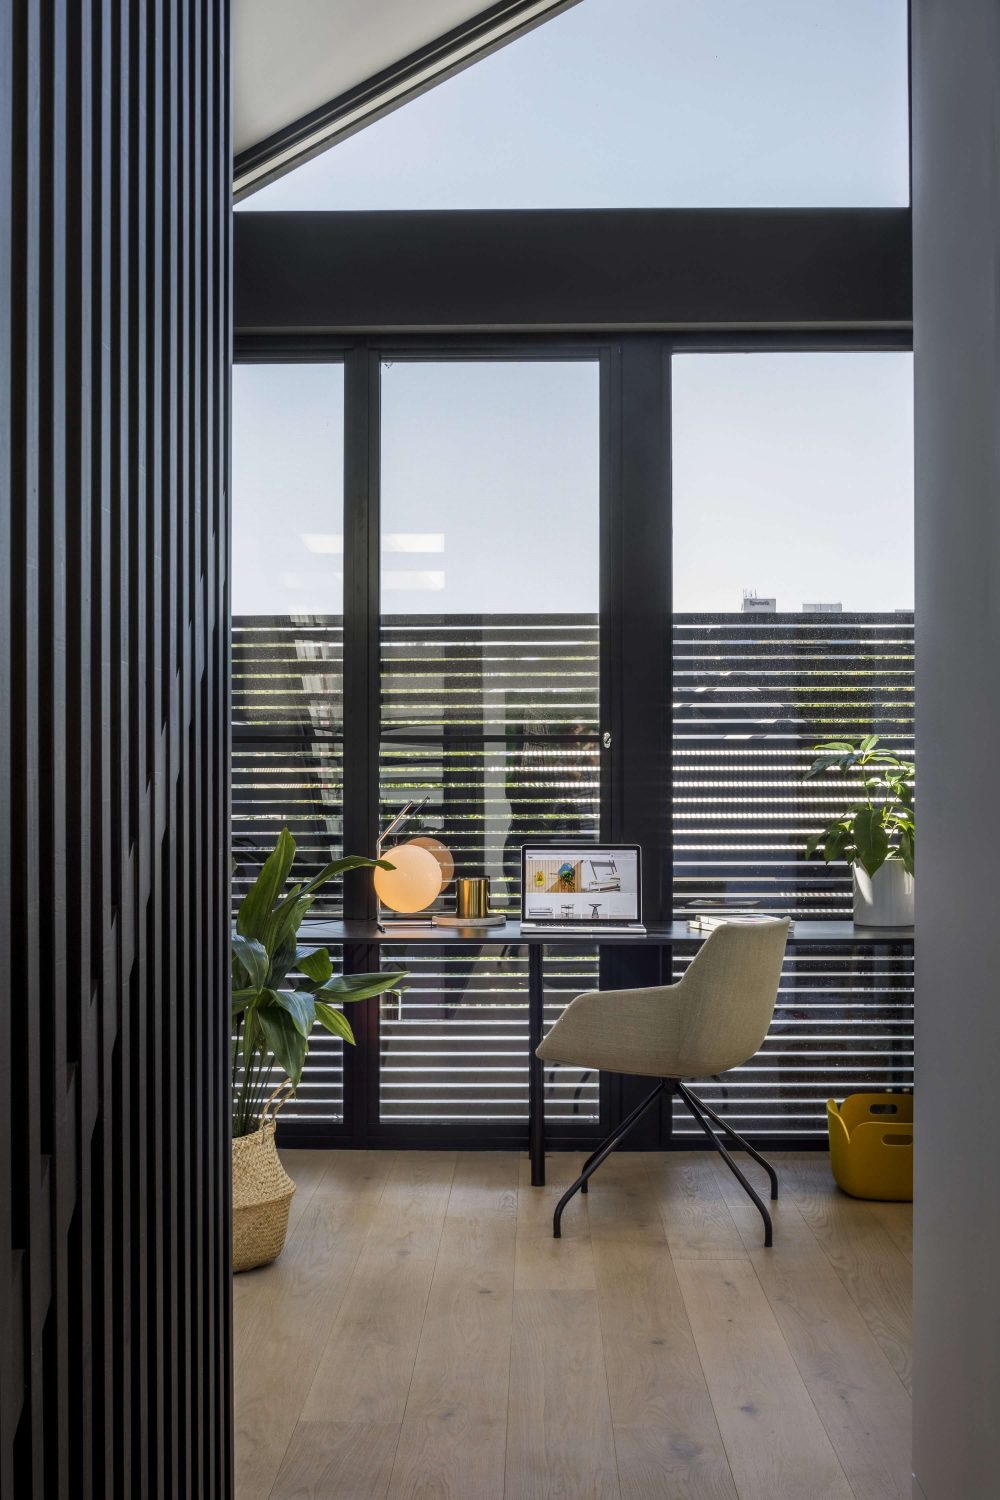 T2 Residence by fyc architects